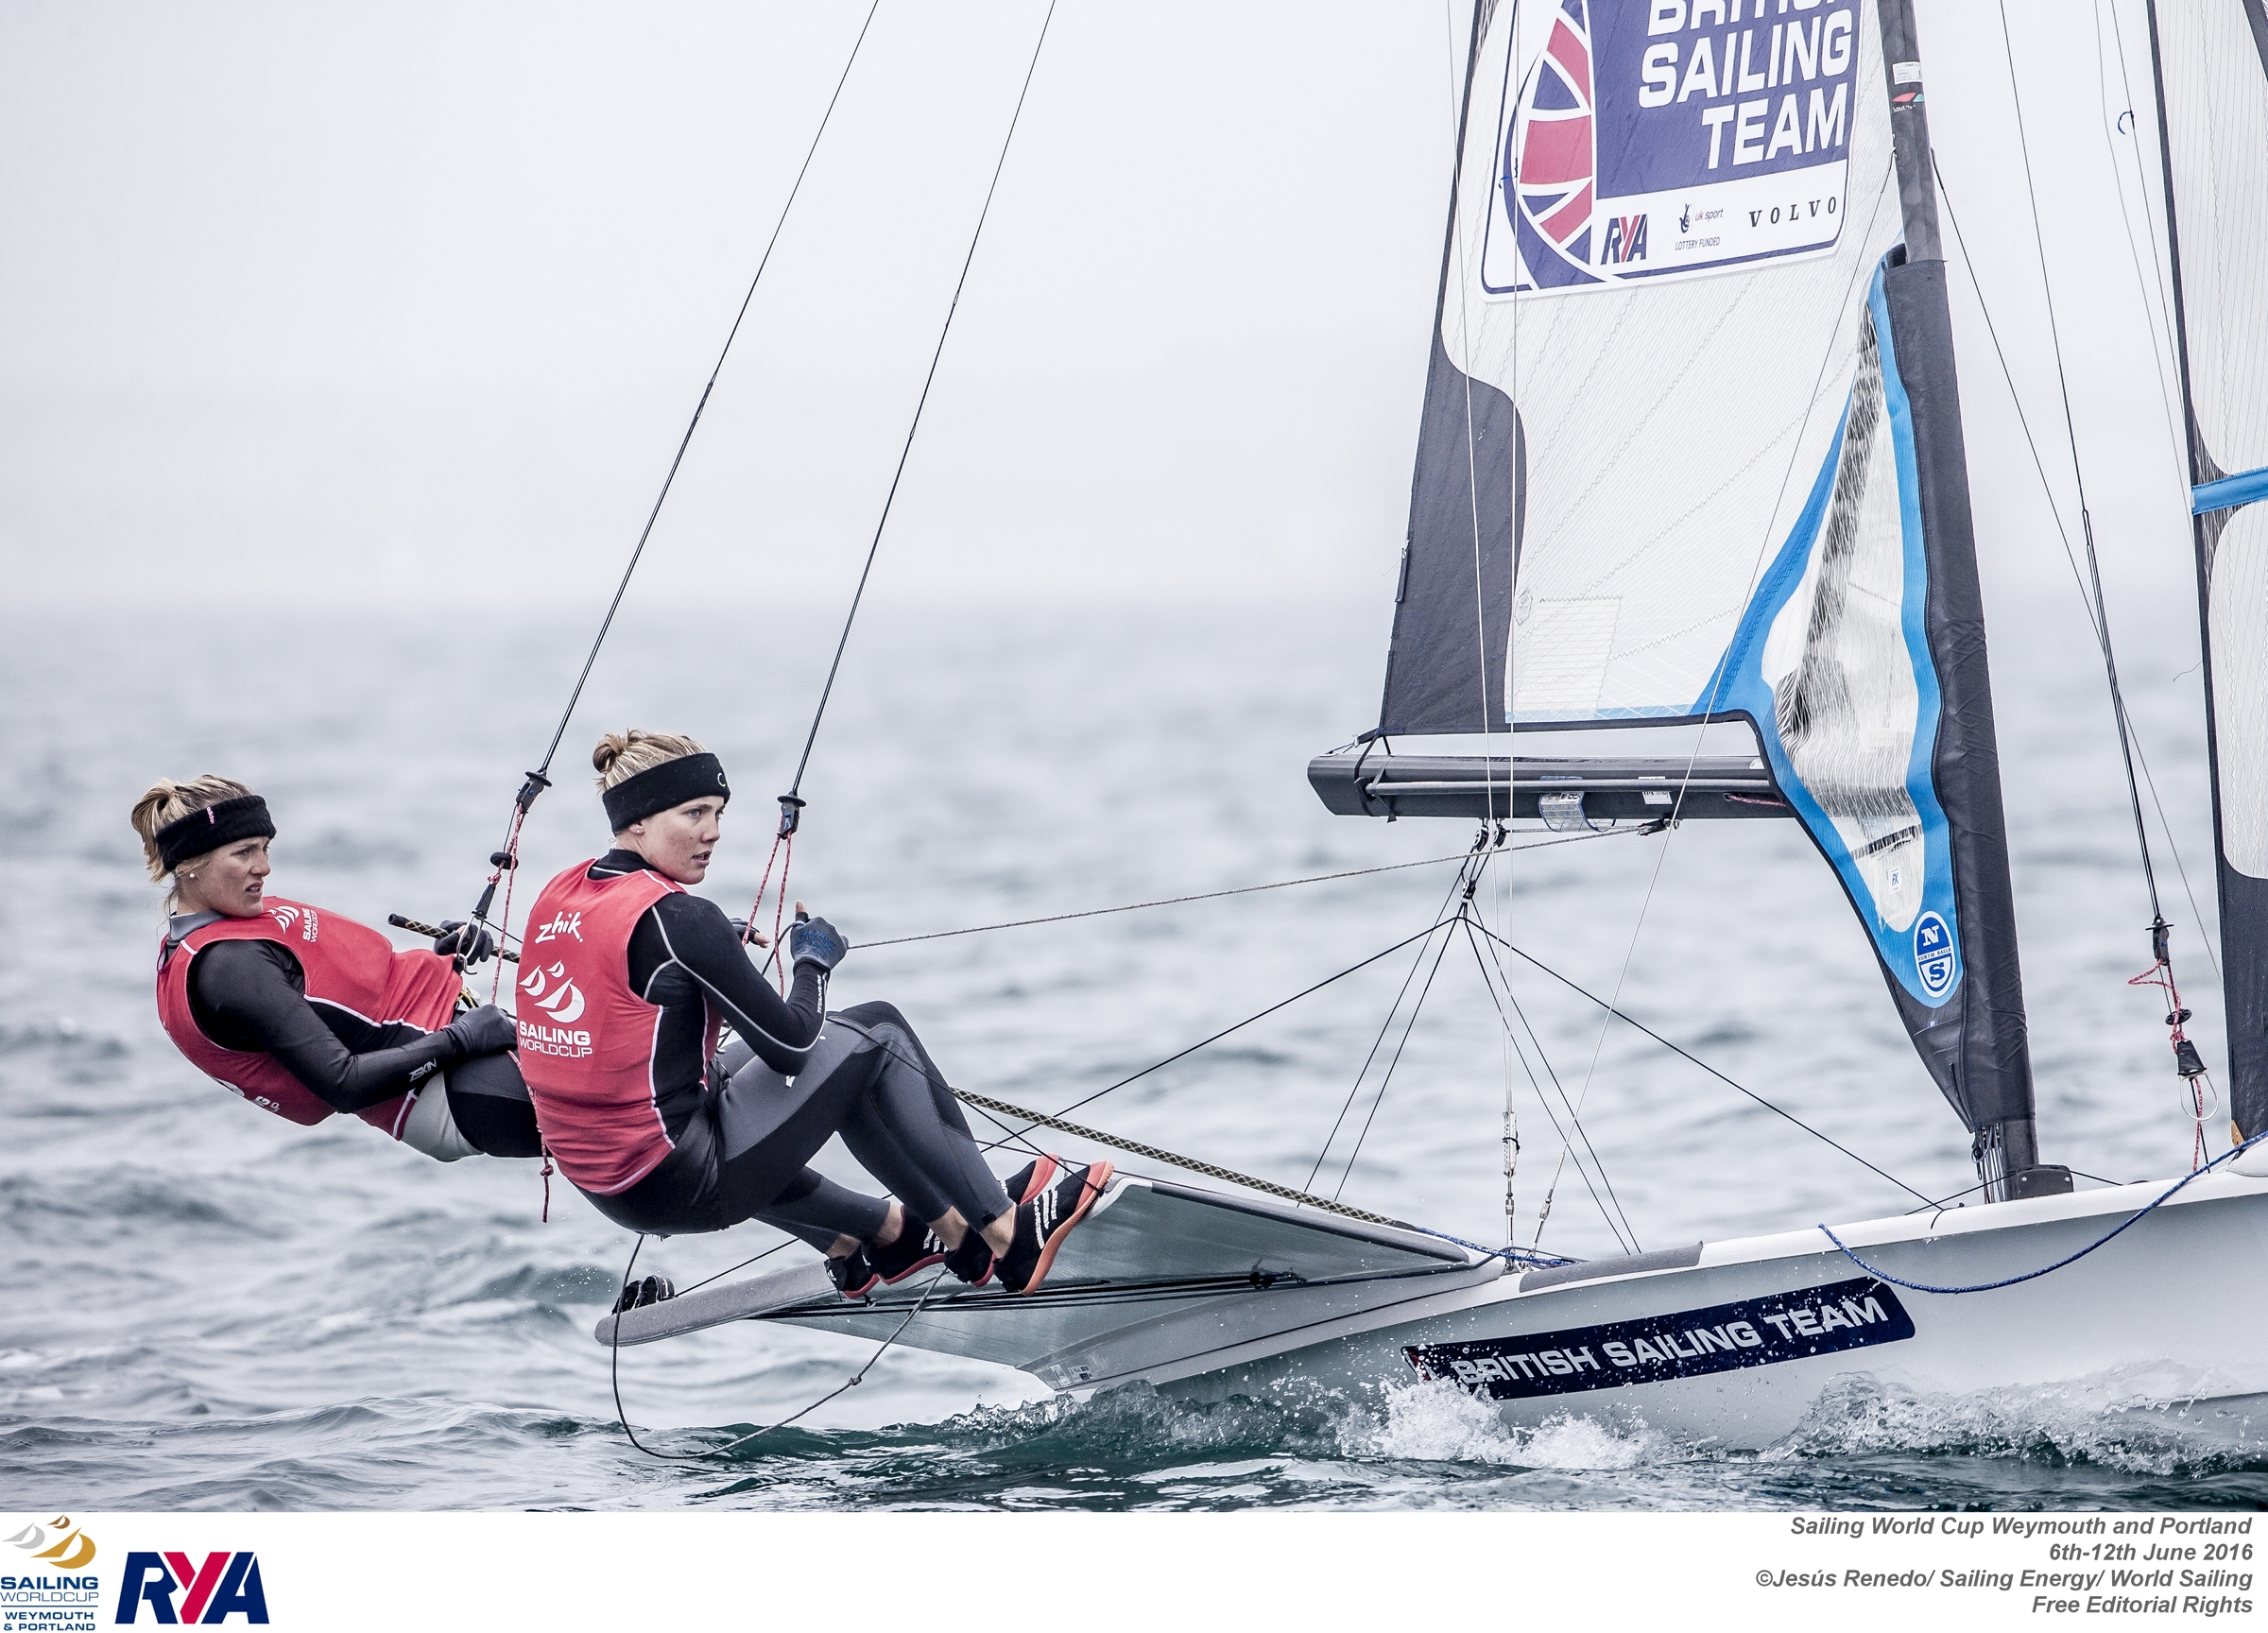 Sophie Ainsworth (right) is in the medal hunt after a strong day at the Sailing World Cup in Weymouth